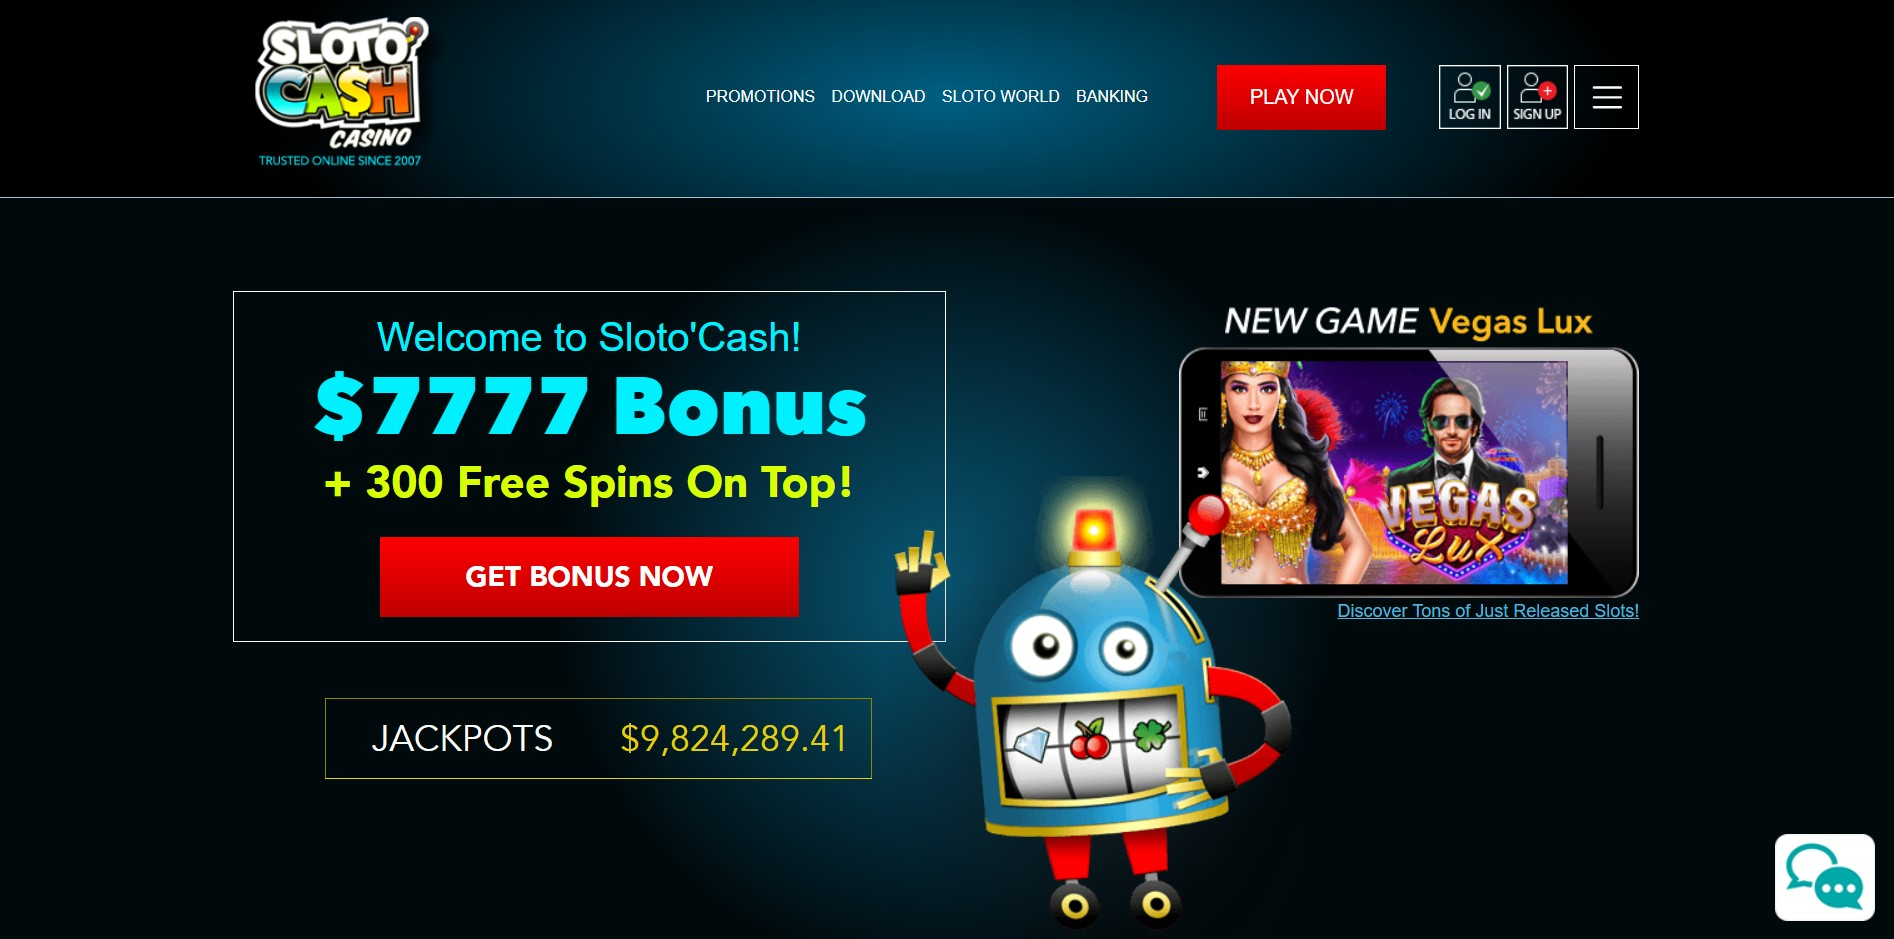 Sloto Cash Casinos Singapore